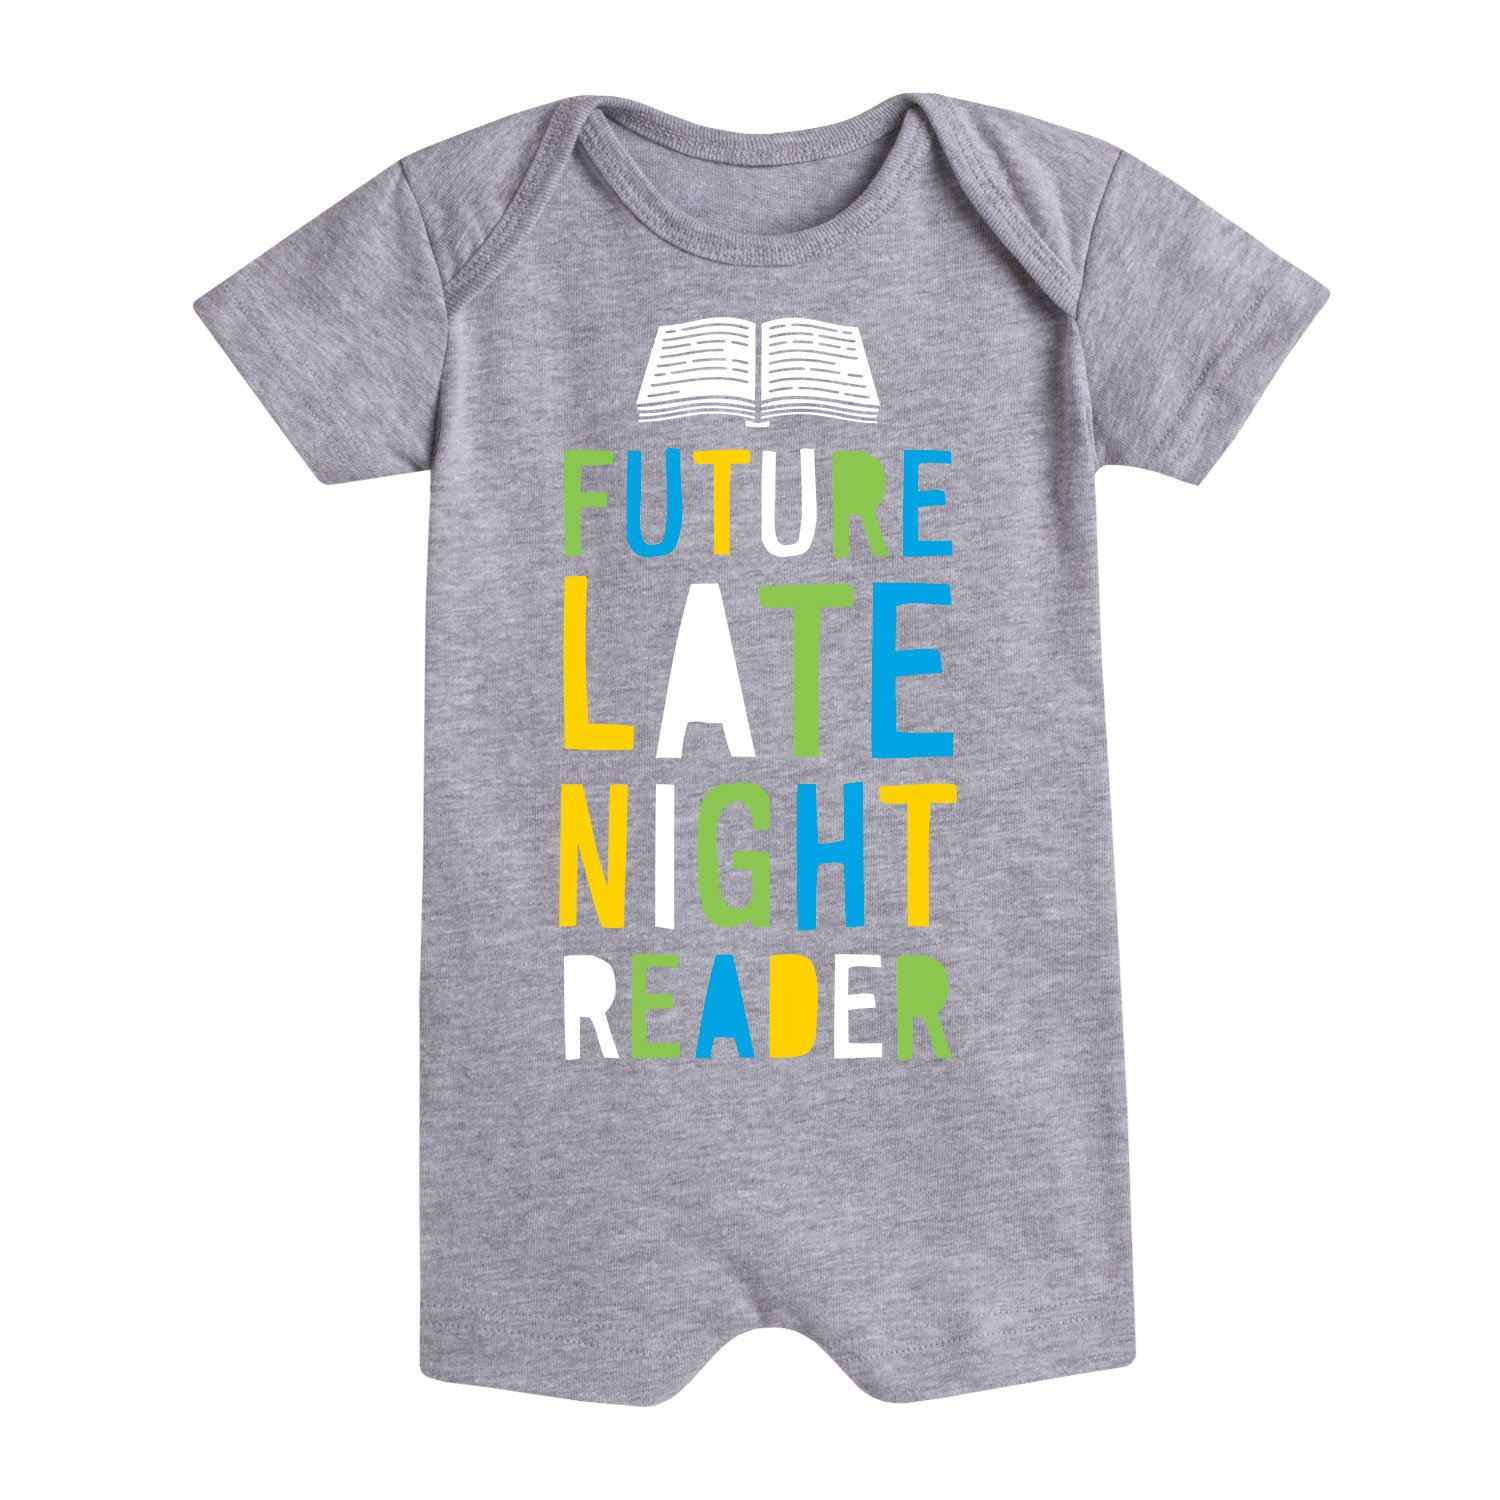 Future Late Night Reader Infant Romper